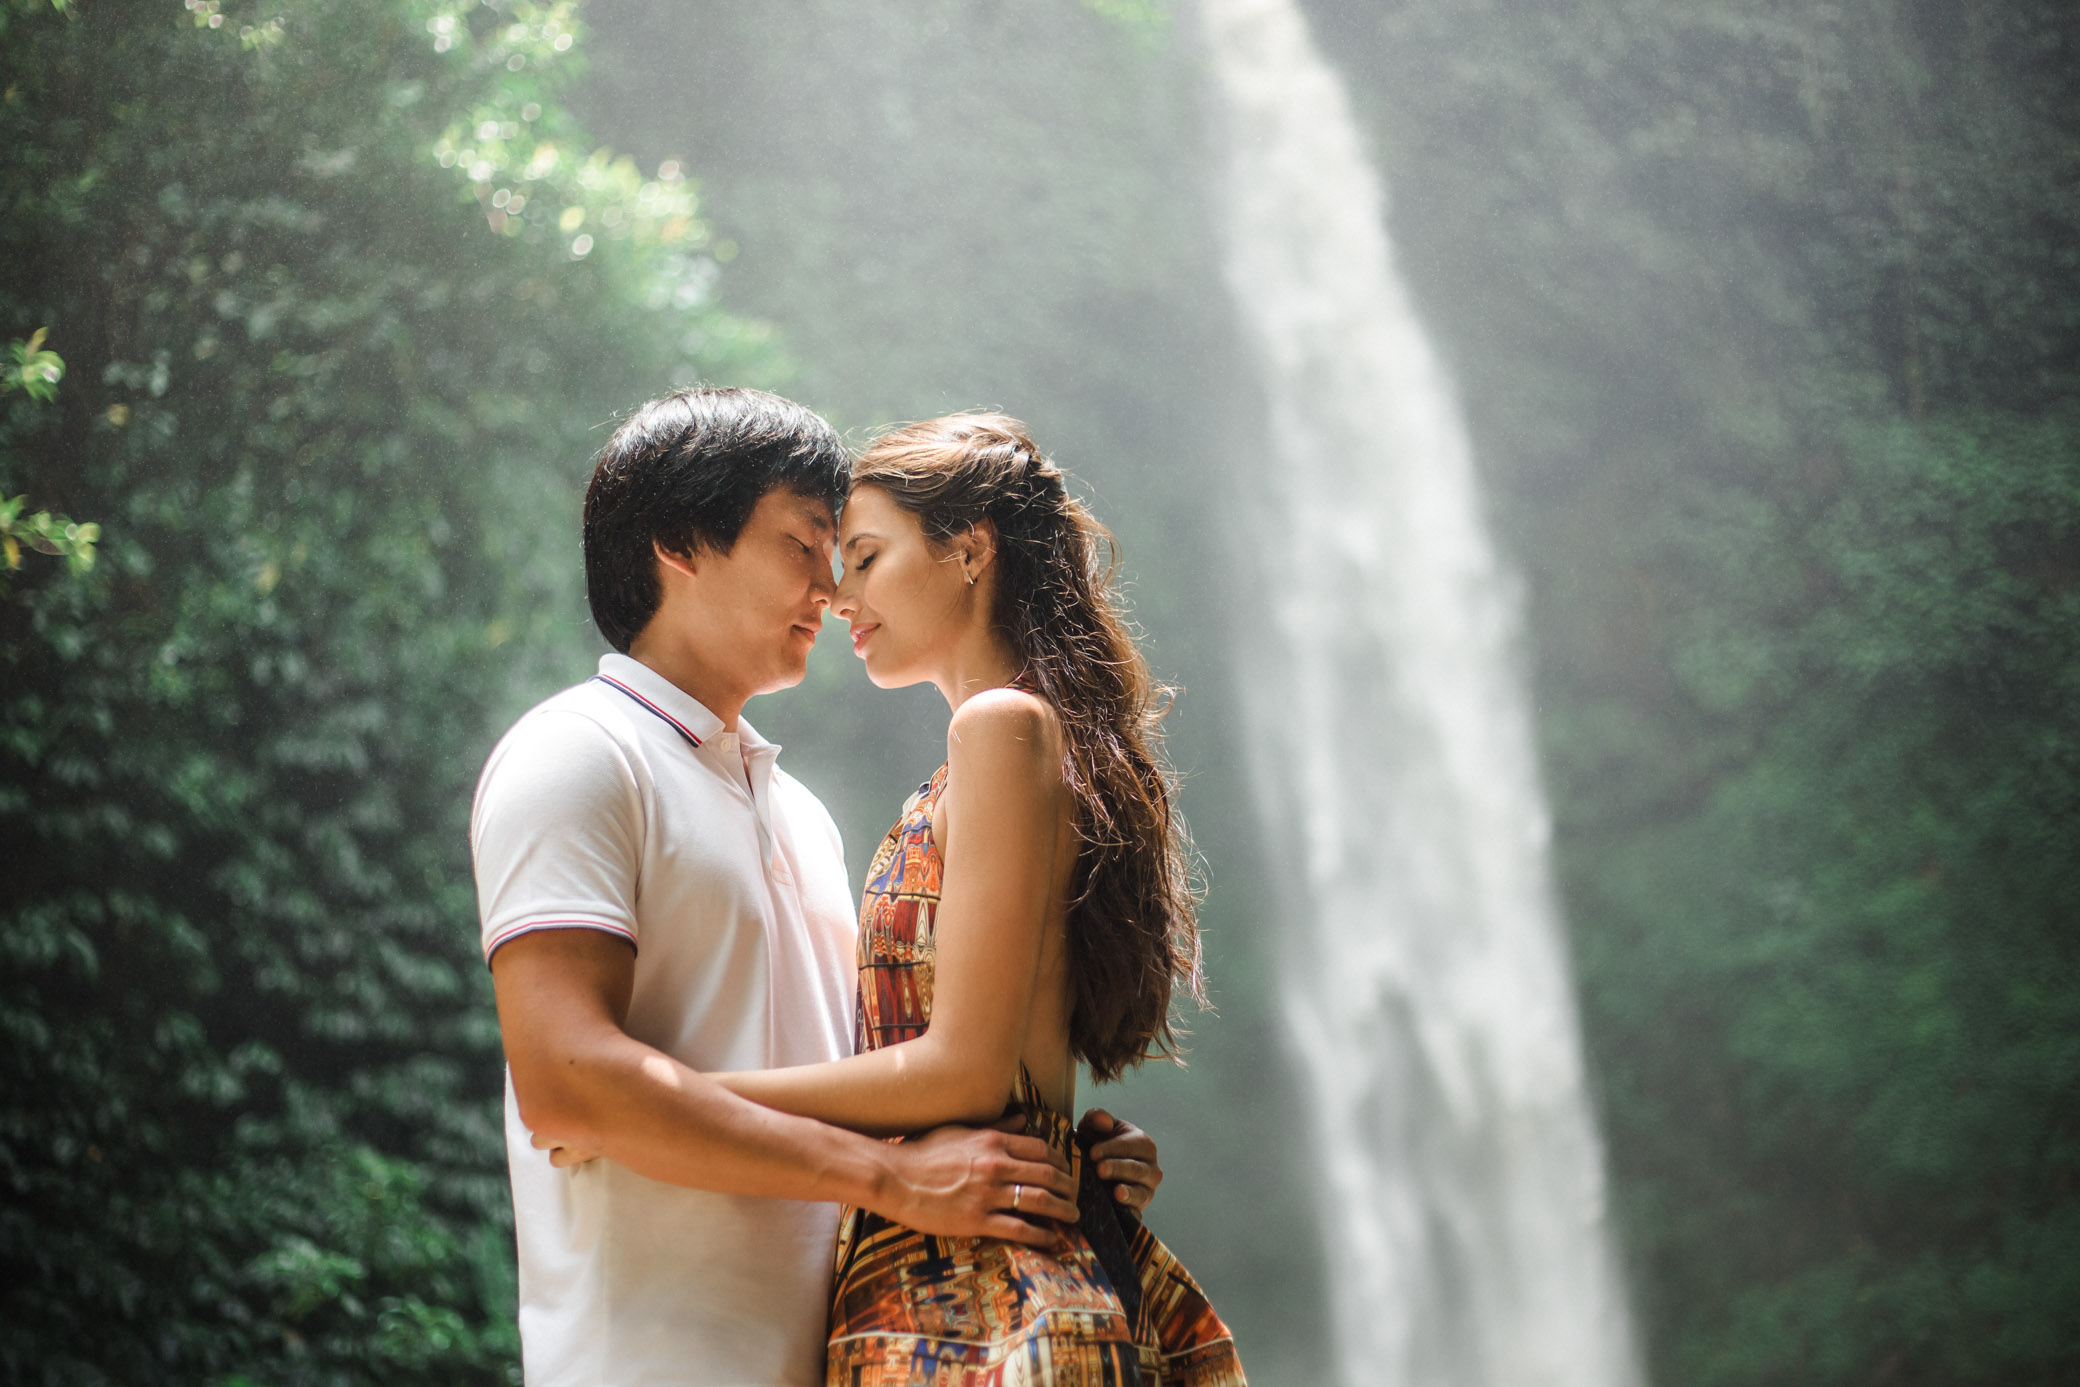 Photoshoot love at the waterfall